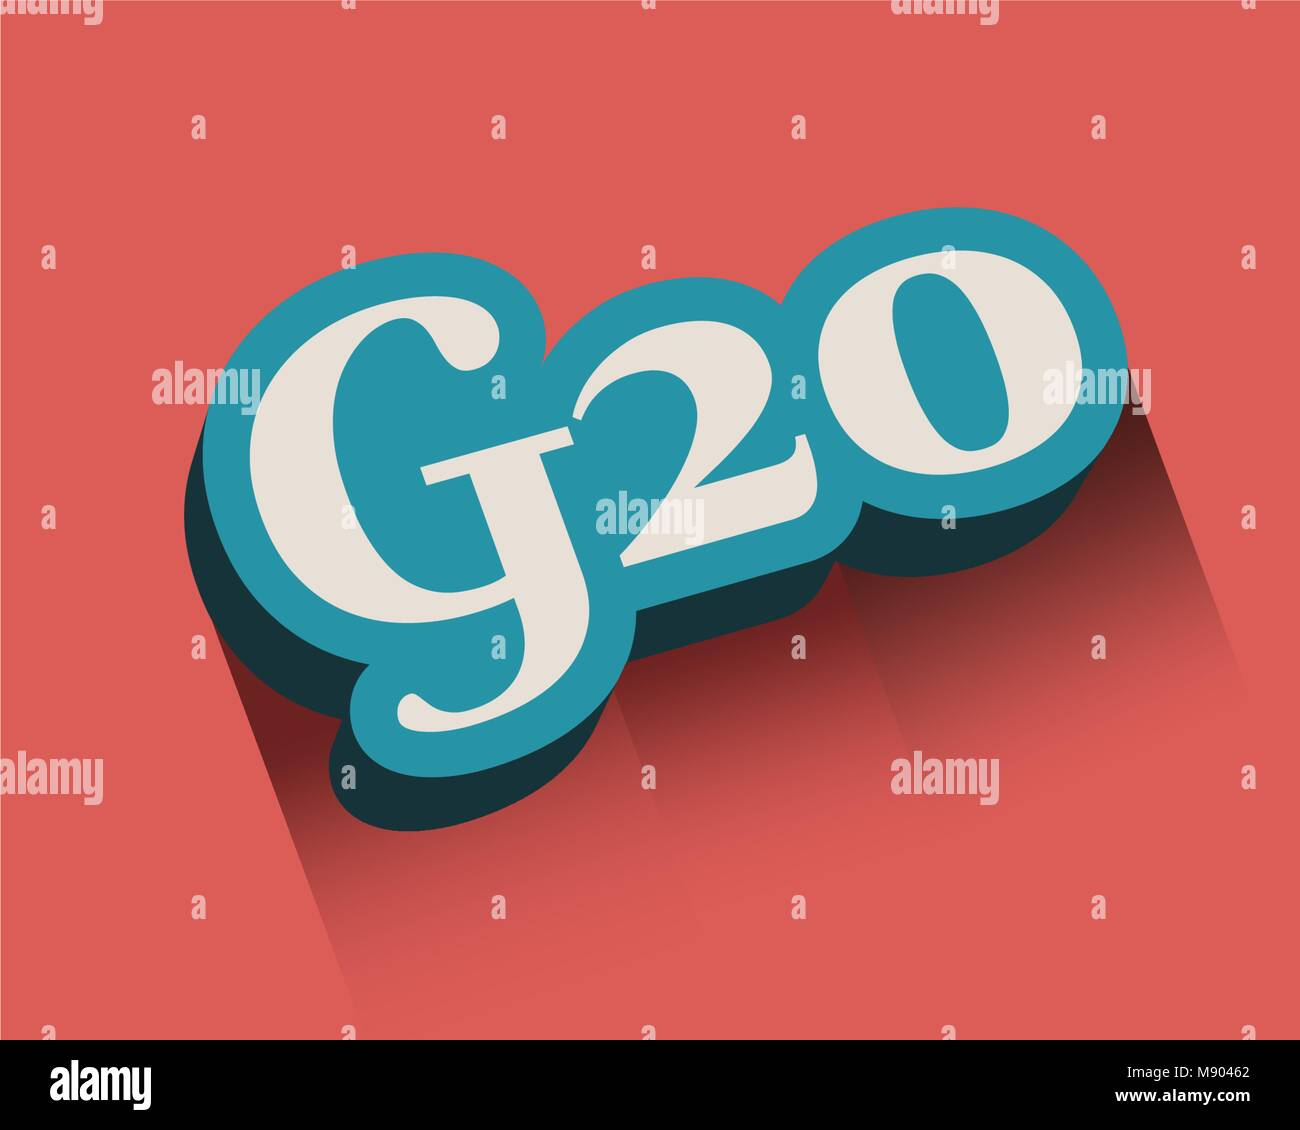 G and 20 Letter and Number - Stock Vector